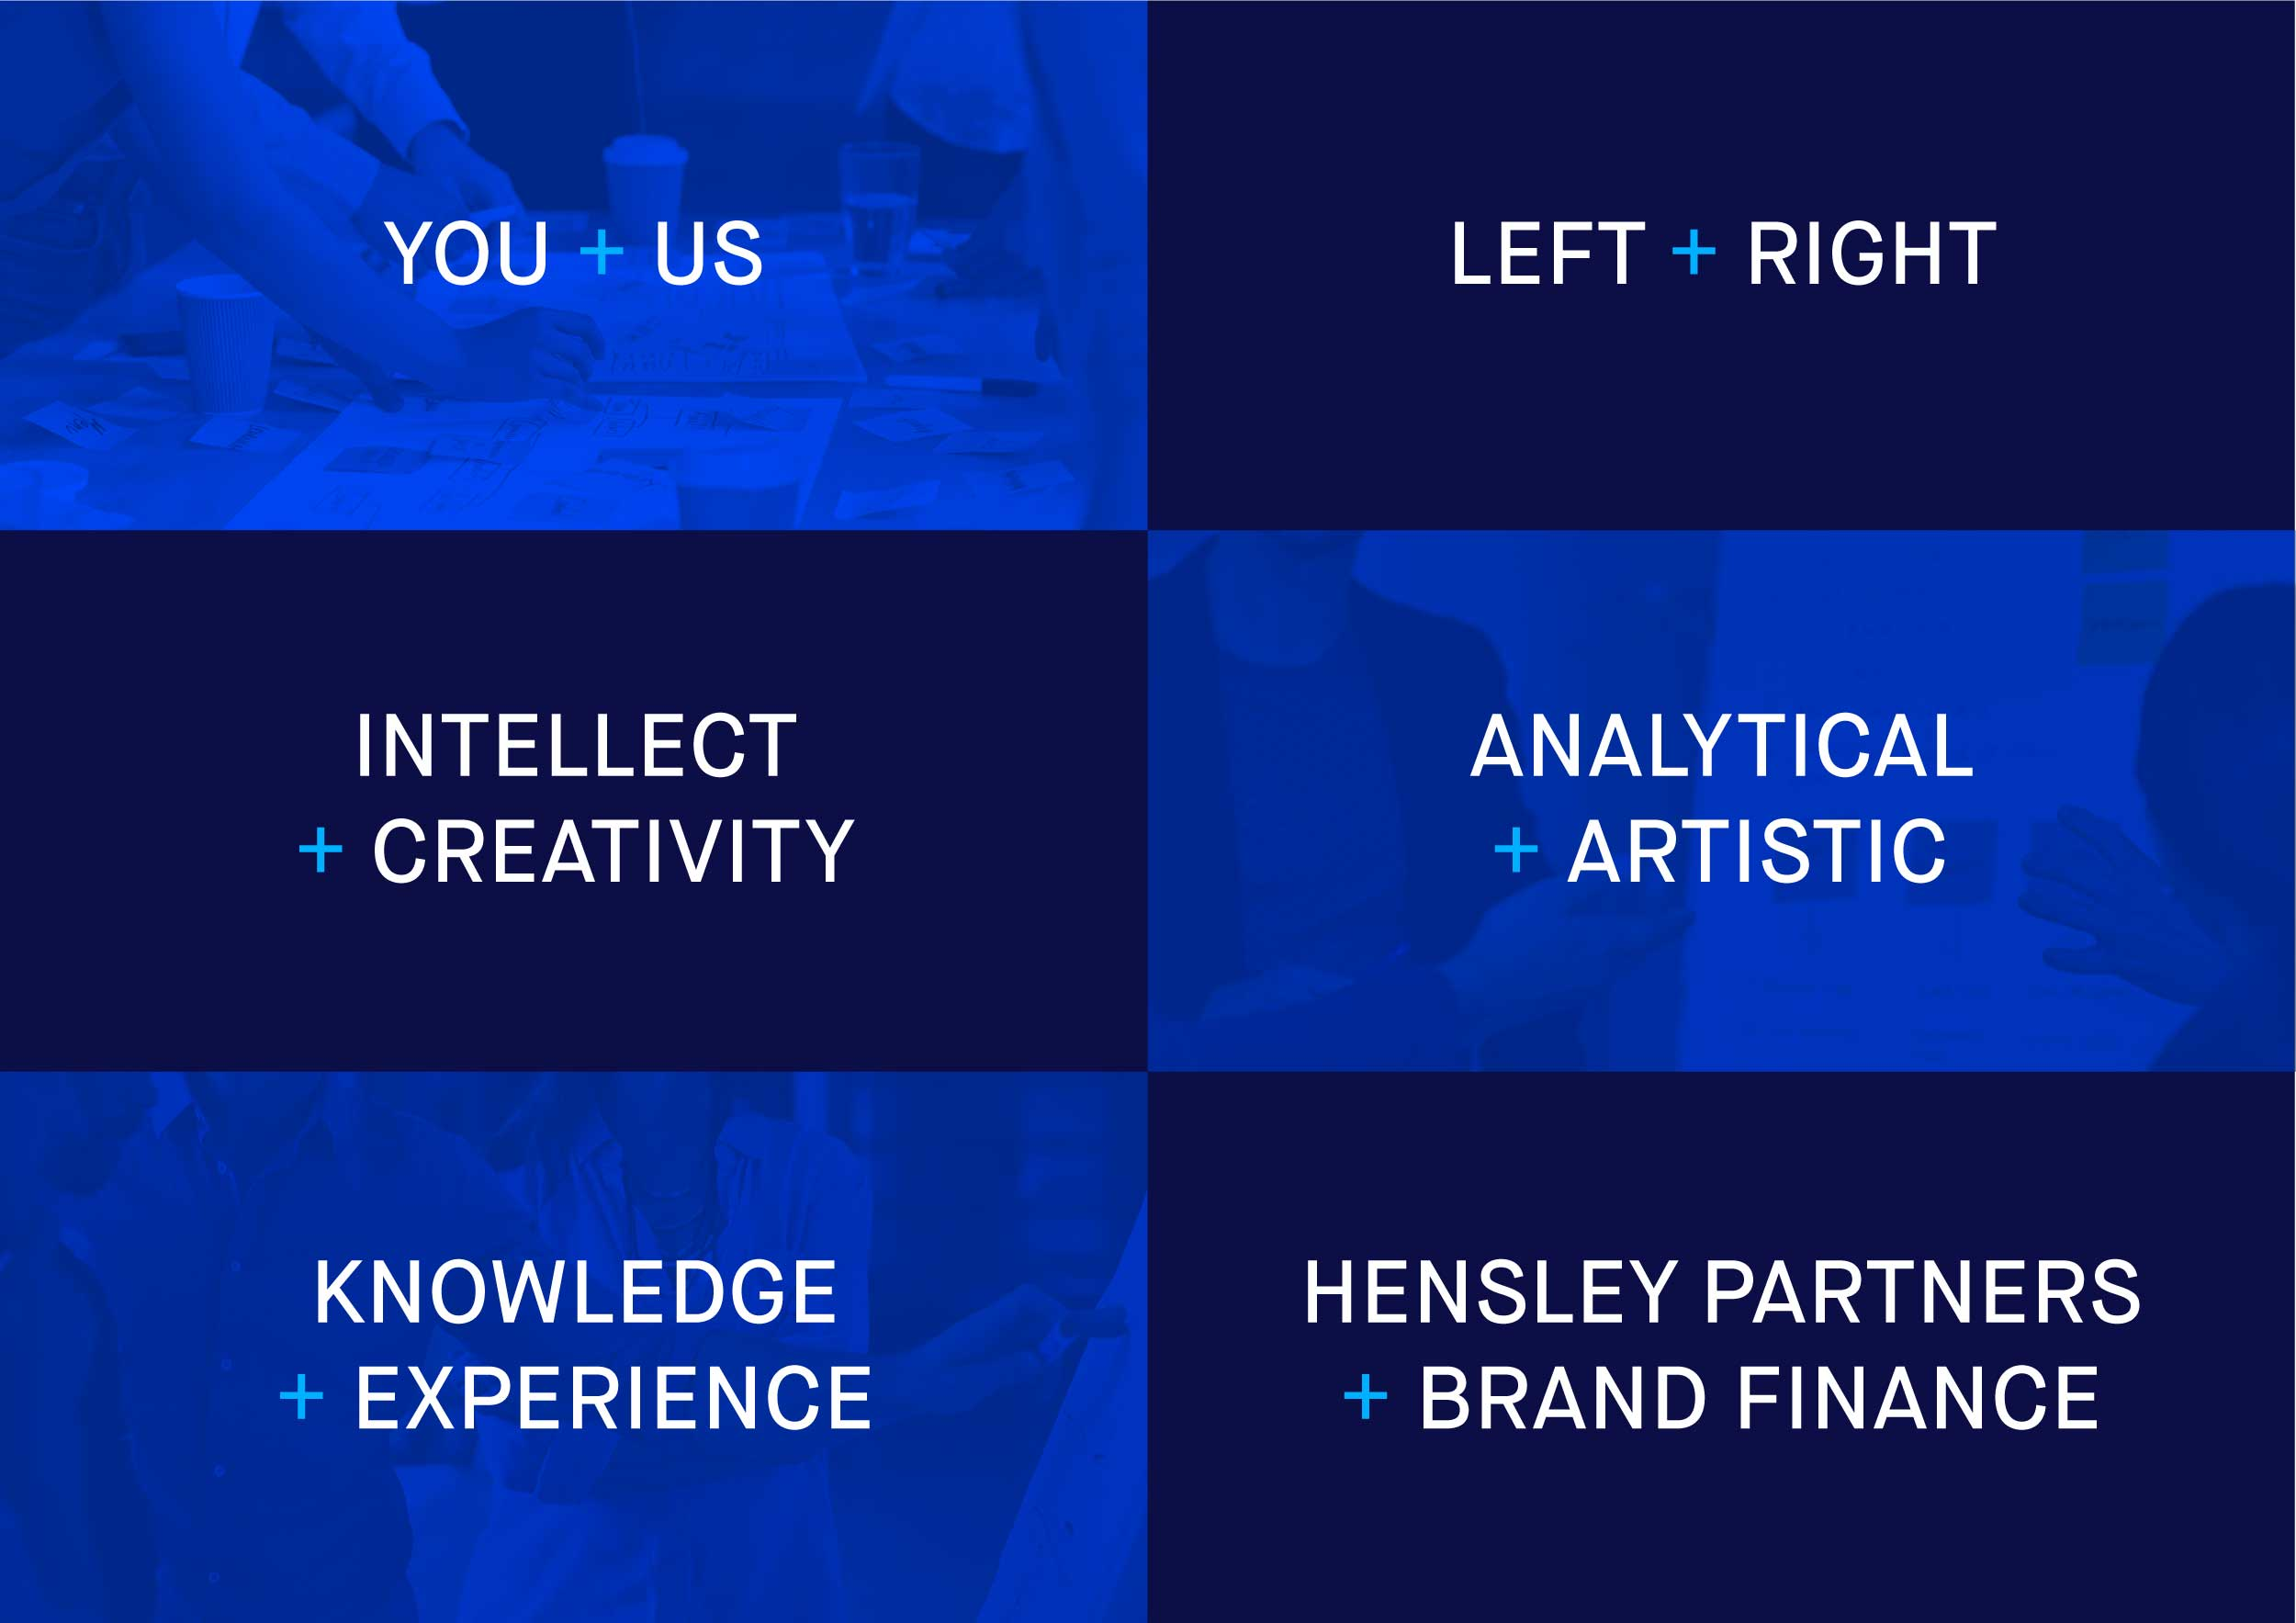 Hensley-Partners-Brand-Concepts-1.jpg